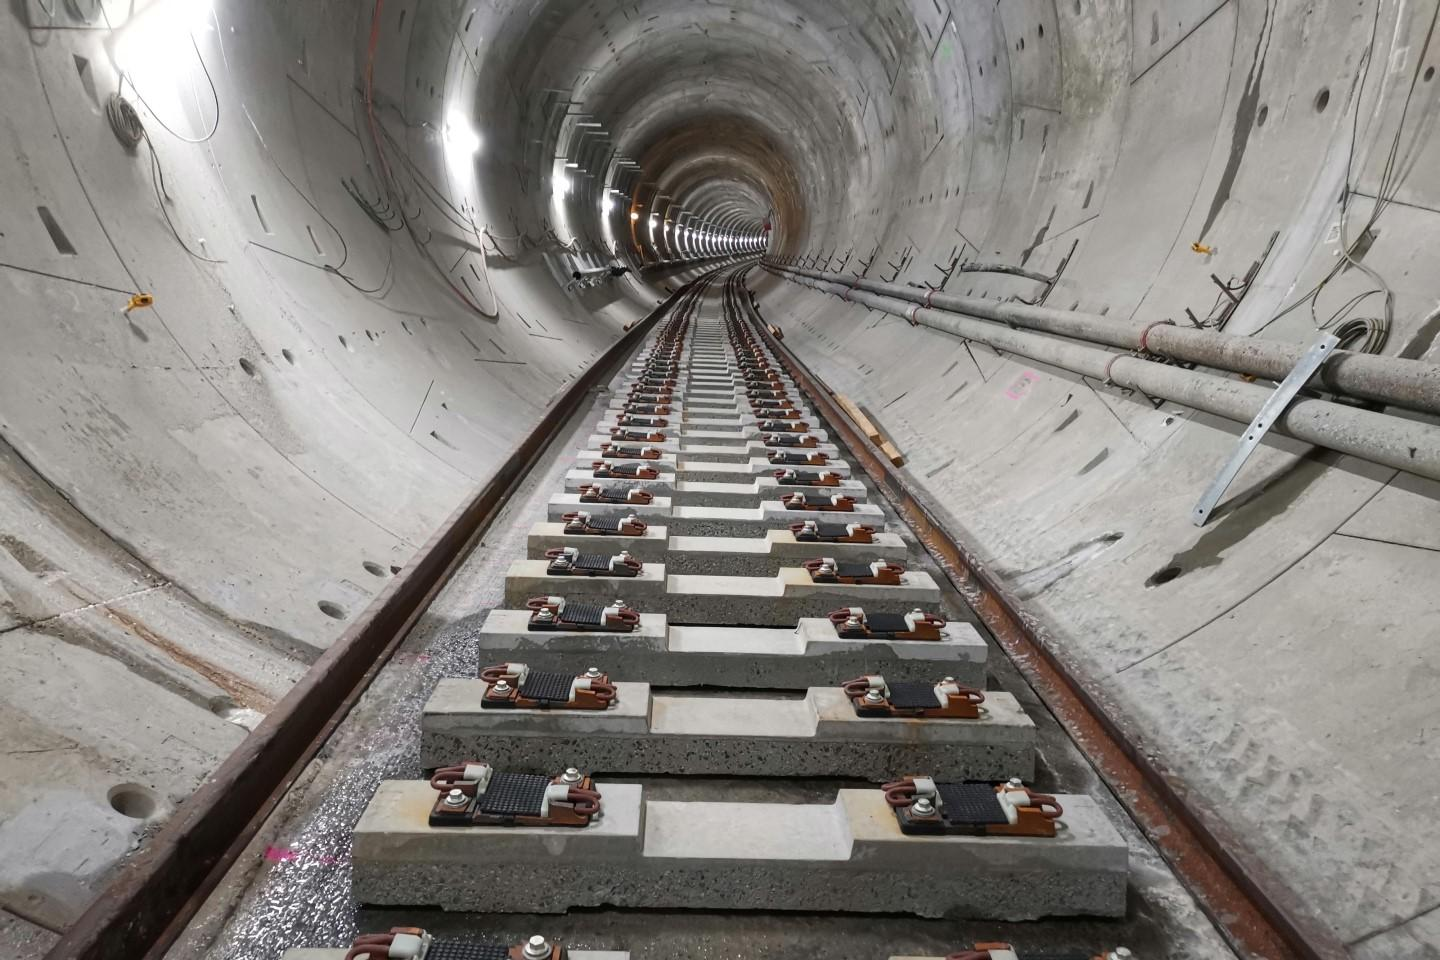 Tunnel contractor fined $150,000